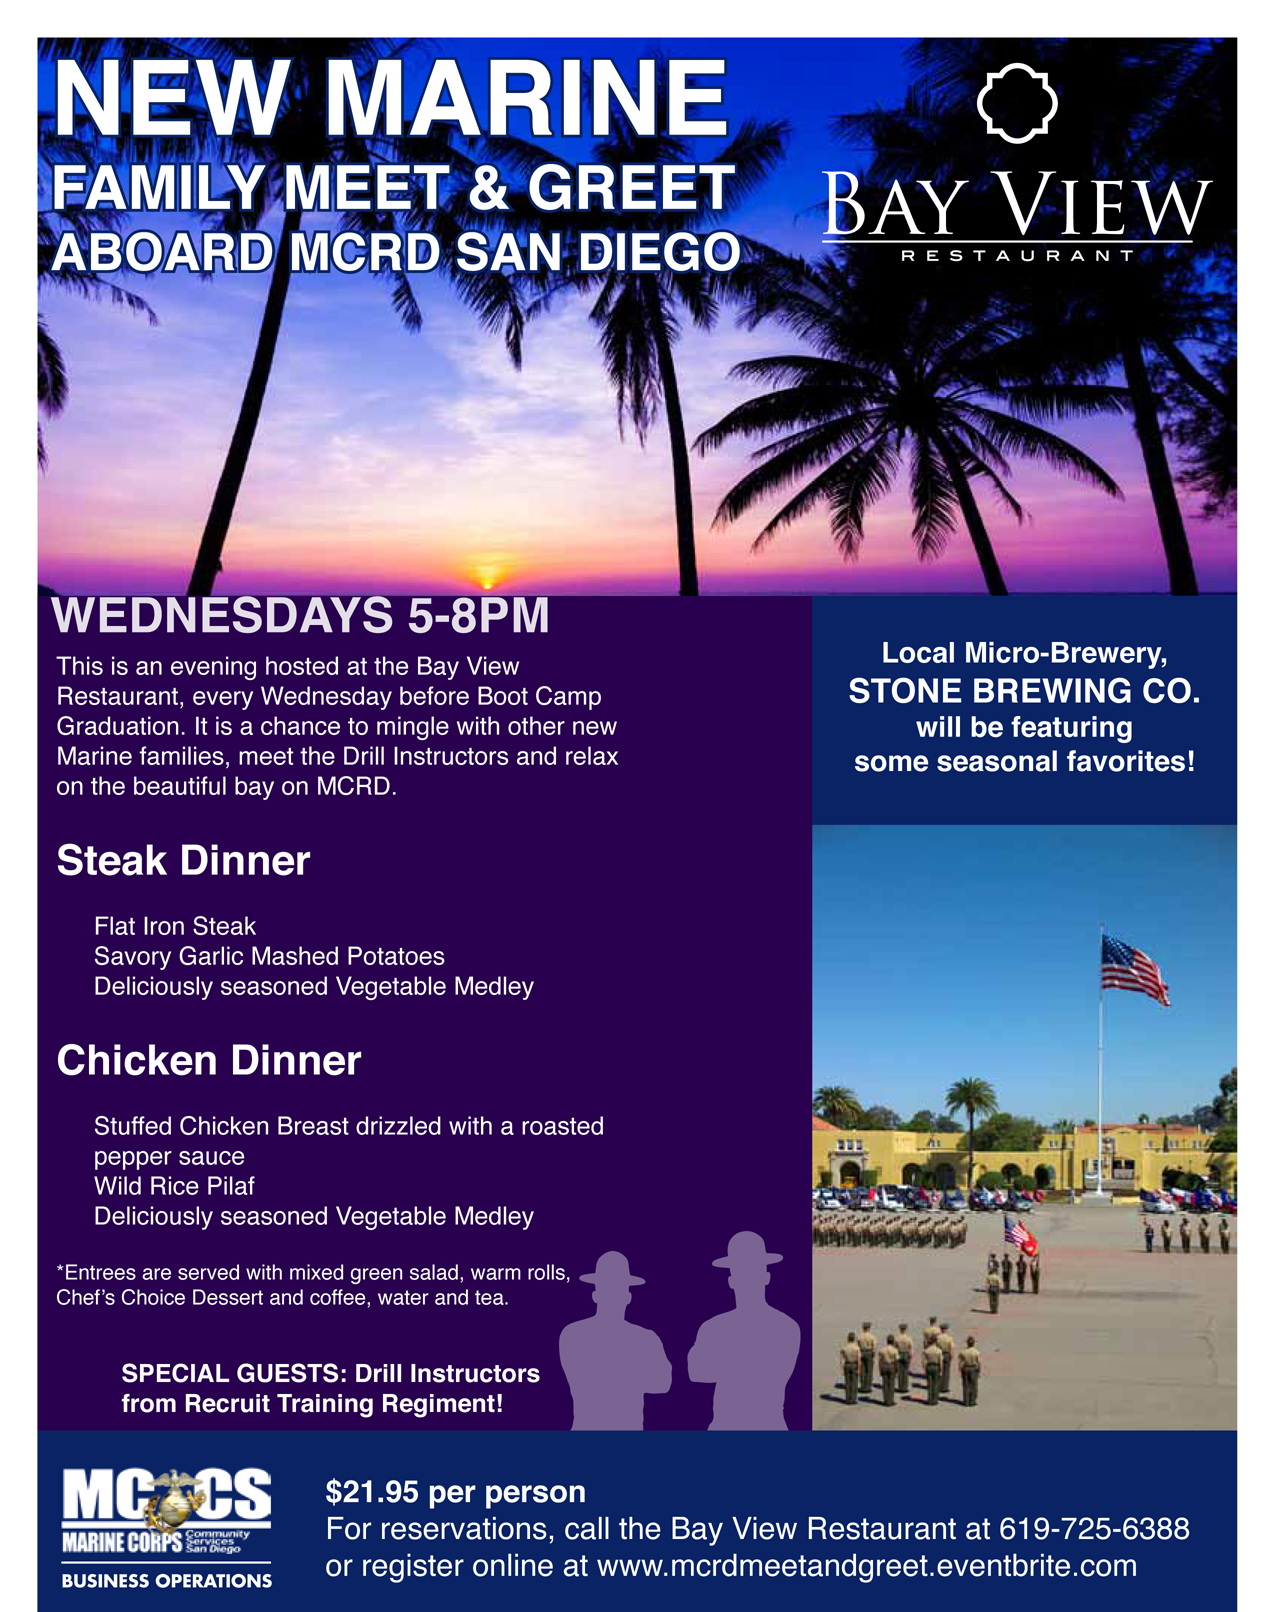 Official New Marine Family Meet and Greet at the Bay View on MCRD San Diego